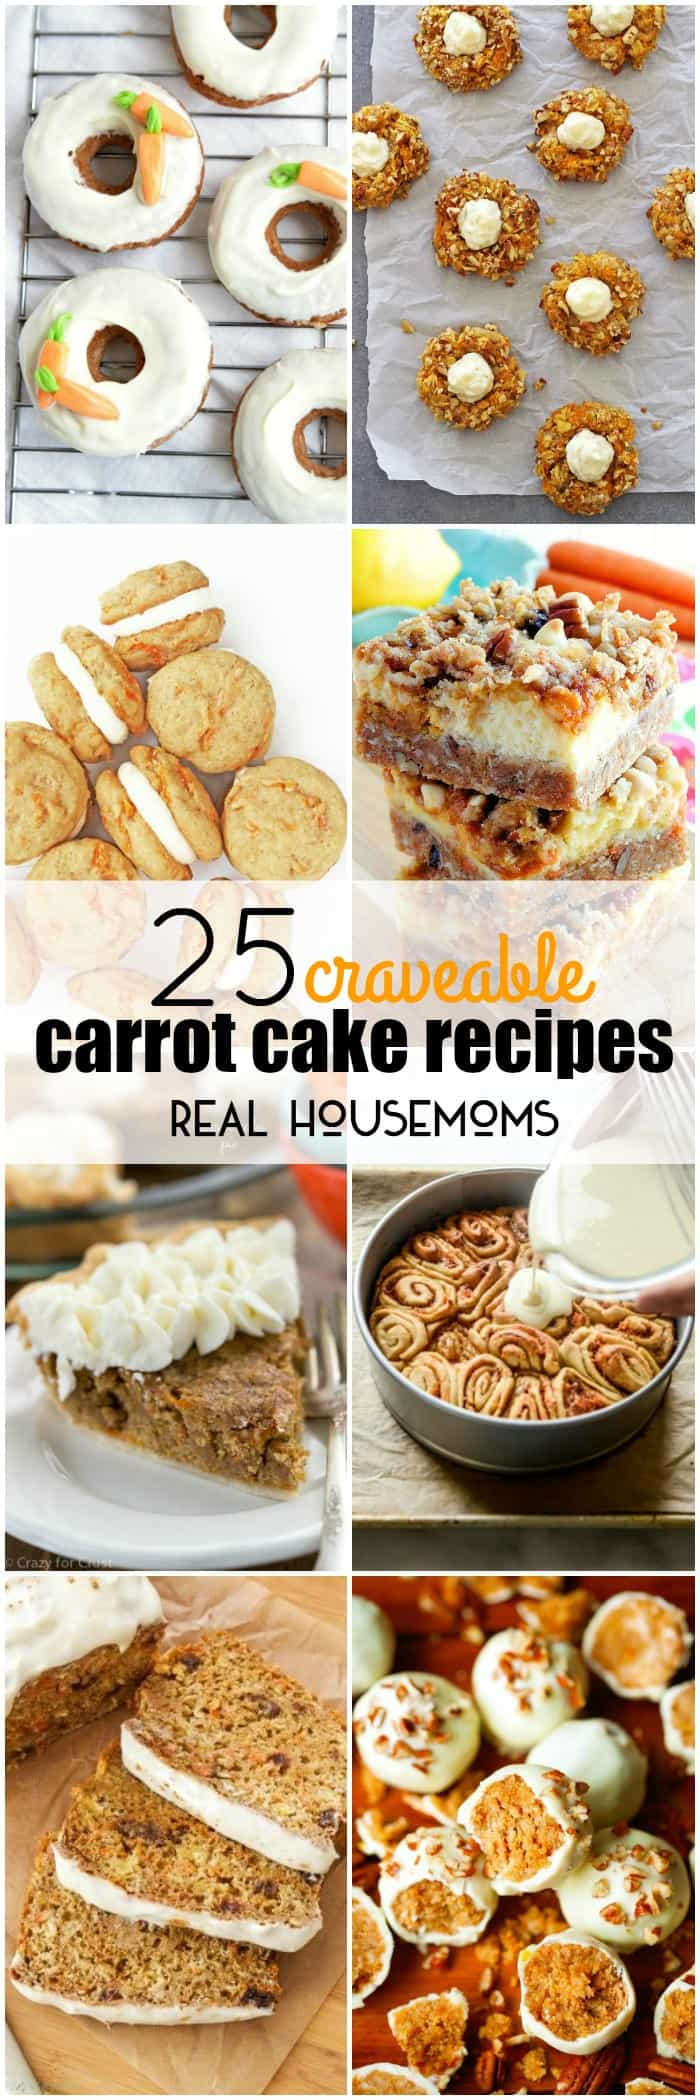 These 25 CRAVEABLE CARROT CAKE RECIPES are so good even the Easter Bunny can't resist them!ERO